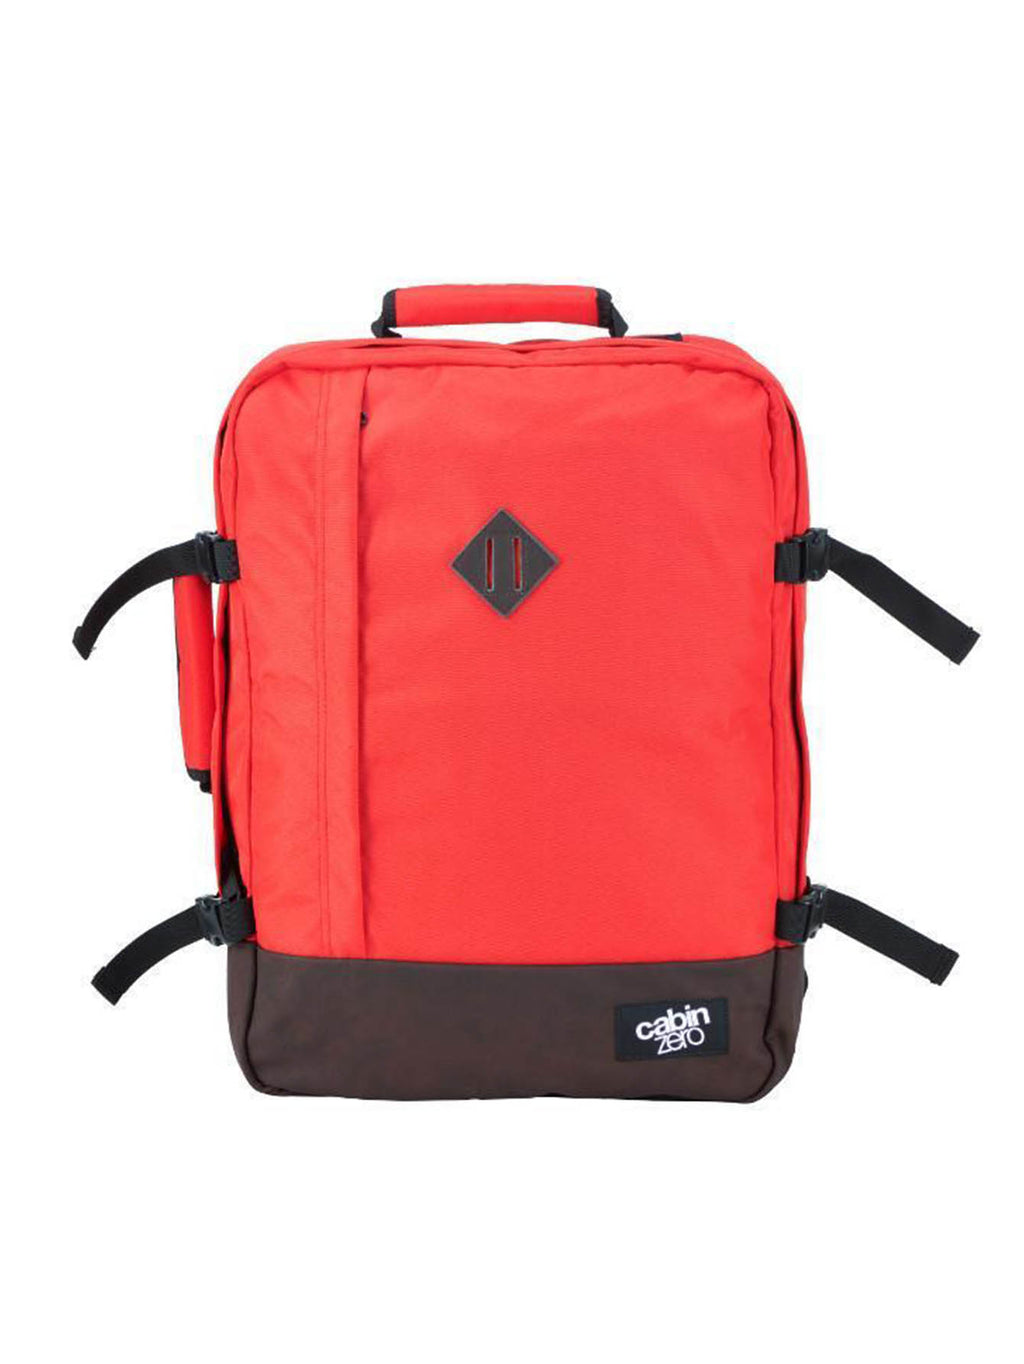 Cabinzero Vintage 44L in Mysore Red Color